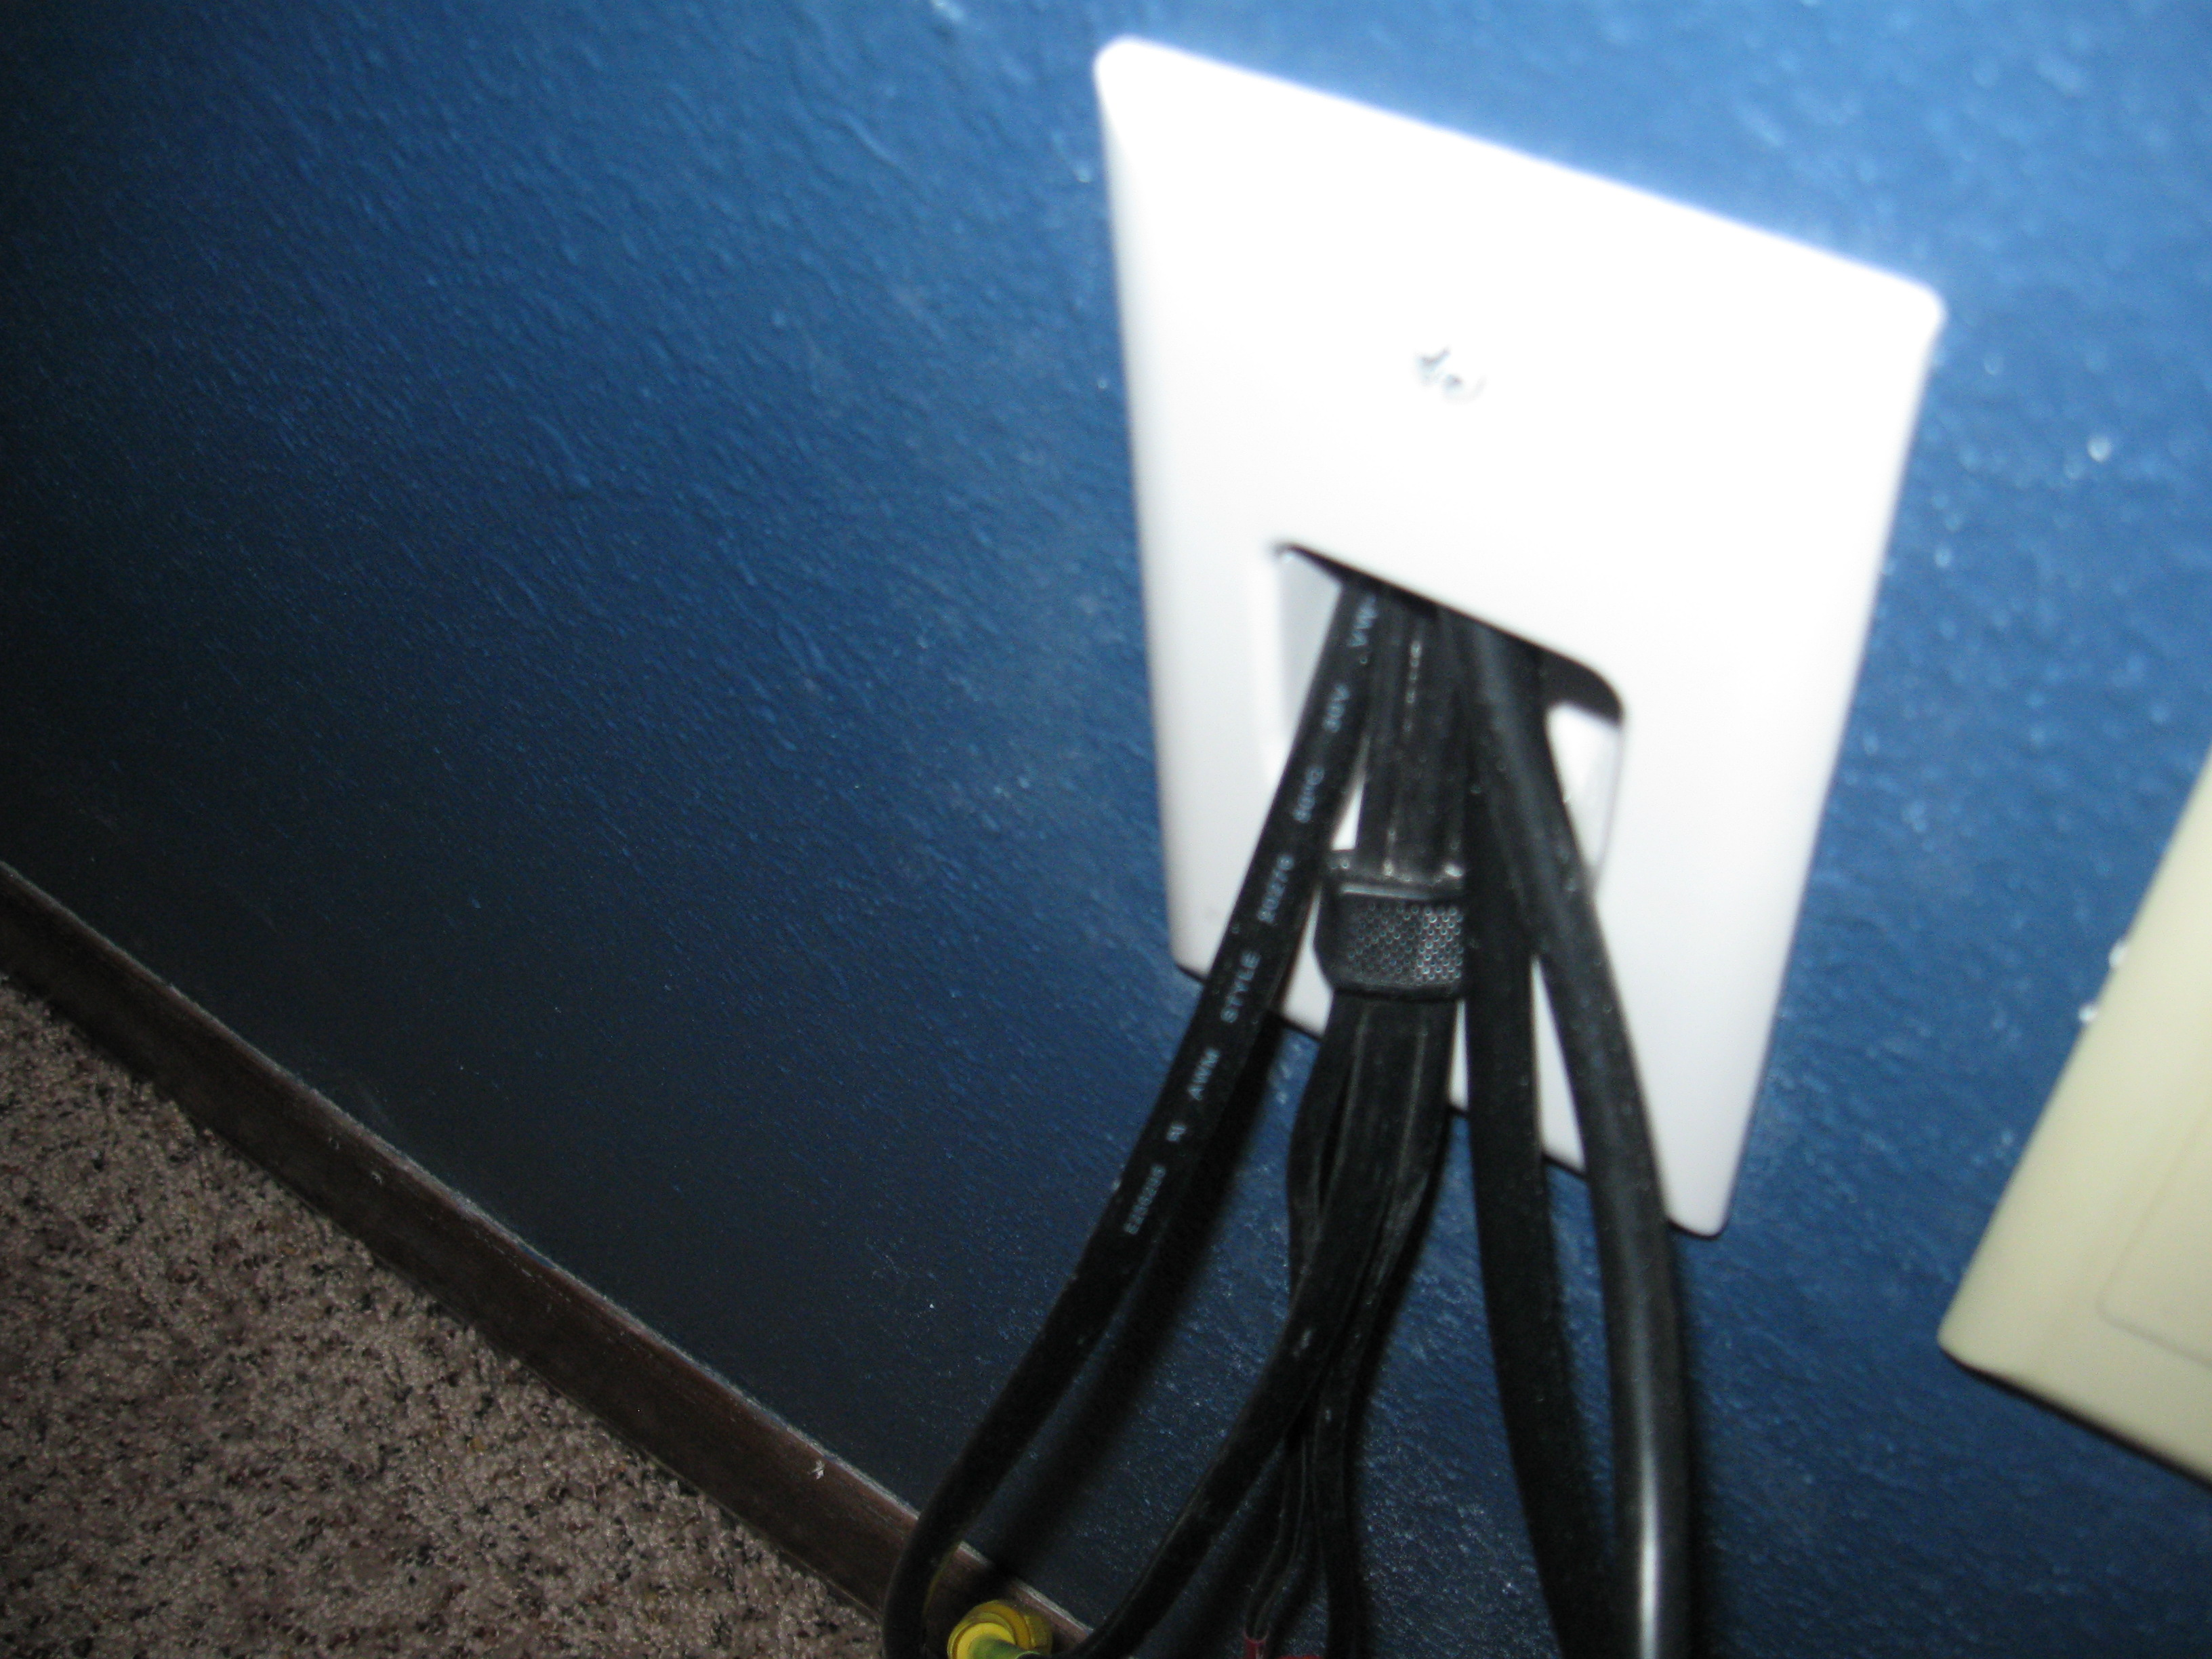 How To Run Hdmi Cable Through Existing Construction Drywall Tv Wiring Wall Plates Pass Face Plate